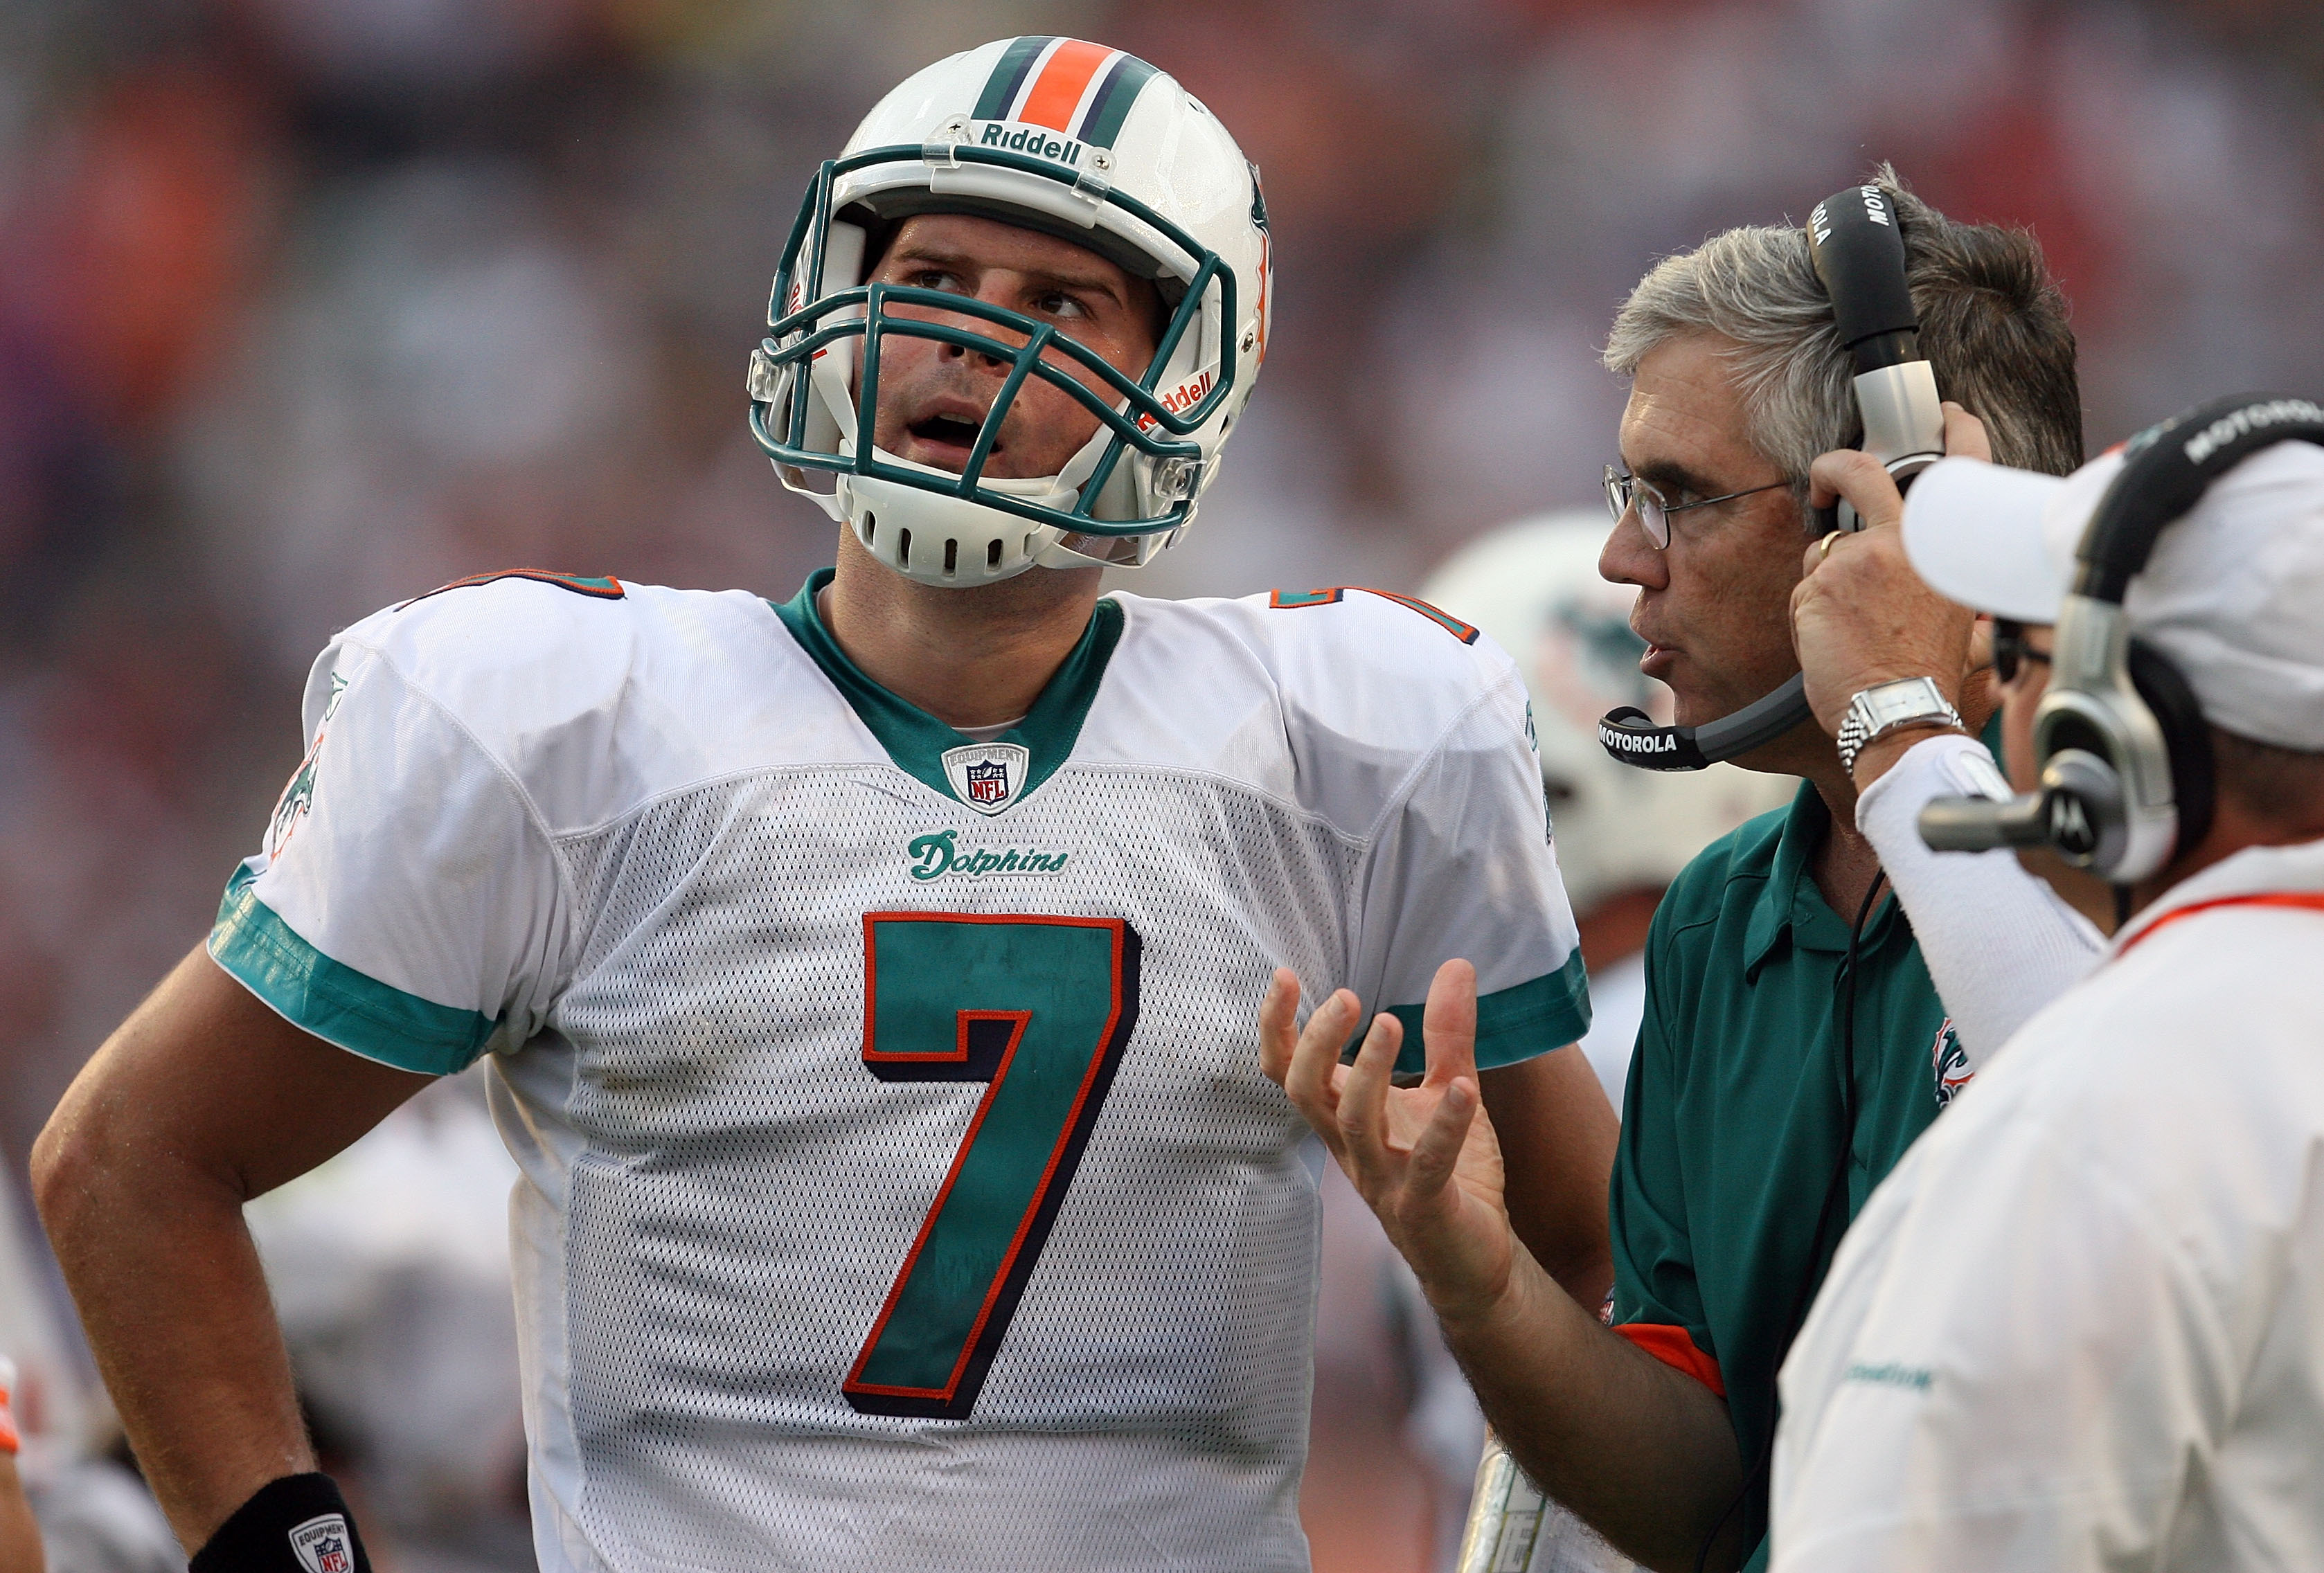 MIAMI - DECEMBER 06:  Quarterback Chad Henne #7 of the Miami Dolphins talks with offensive coordinator Dan Henning and head coach Tony Sparano late in the game against the New England Patriots at Land Shark Stadium on December 6, 2009 in Miami, Florida. T